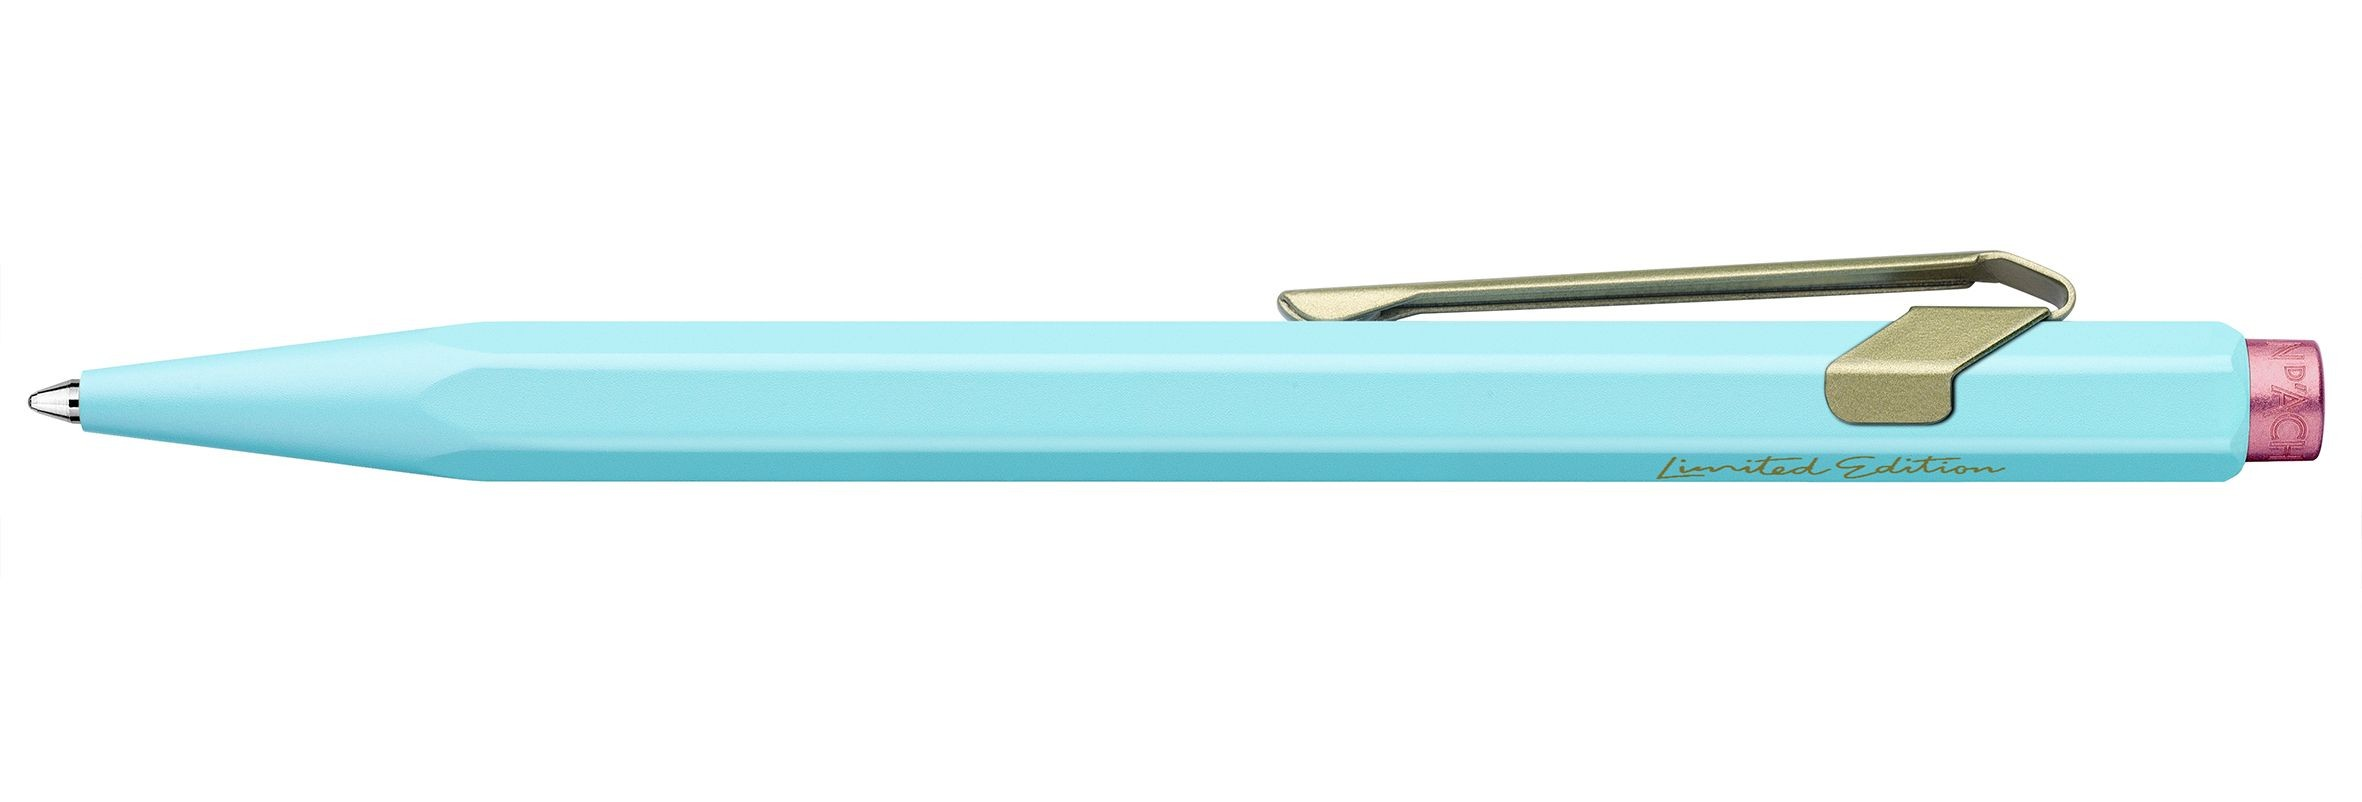 Caran d'Ache 849 Claim Your Style II Limited Edition Bluish Pale Ballpoint